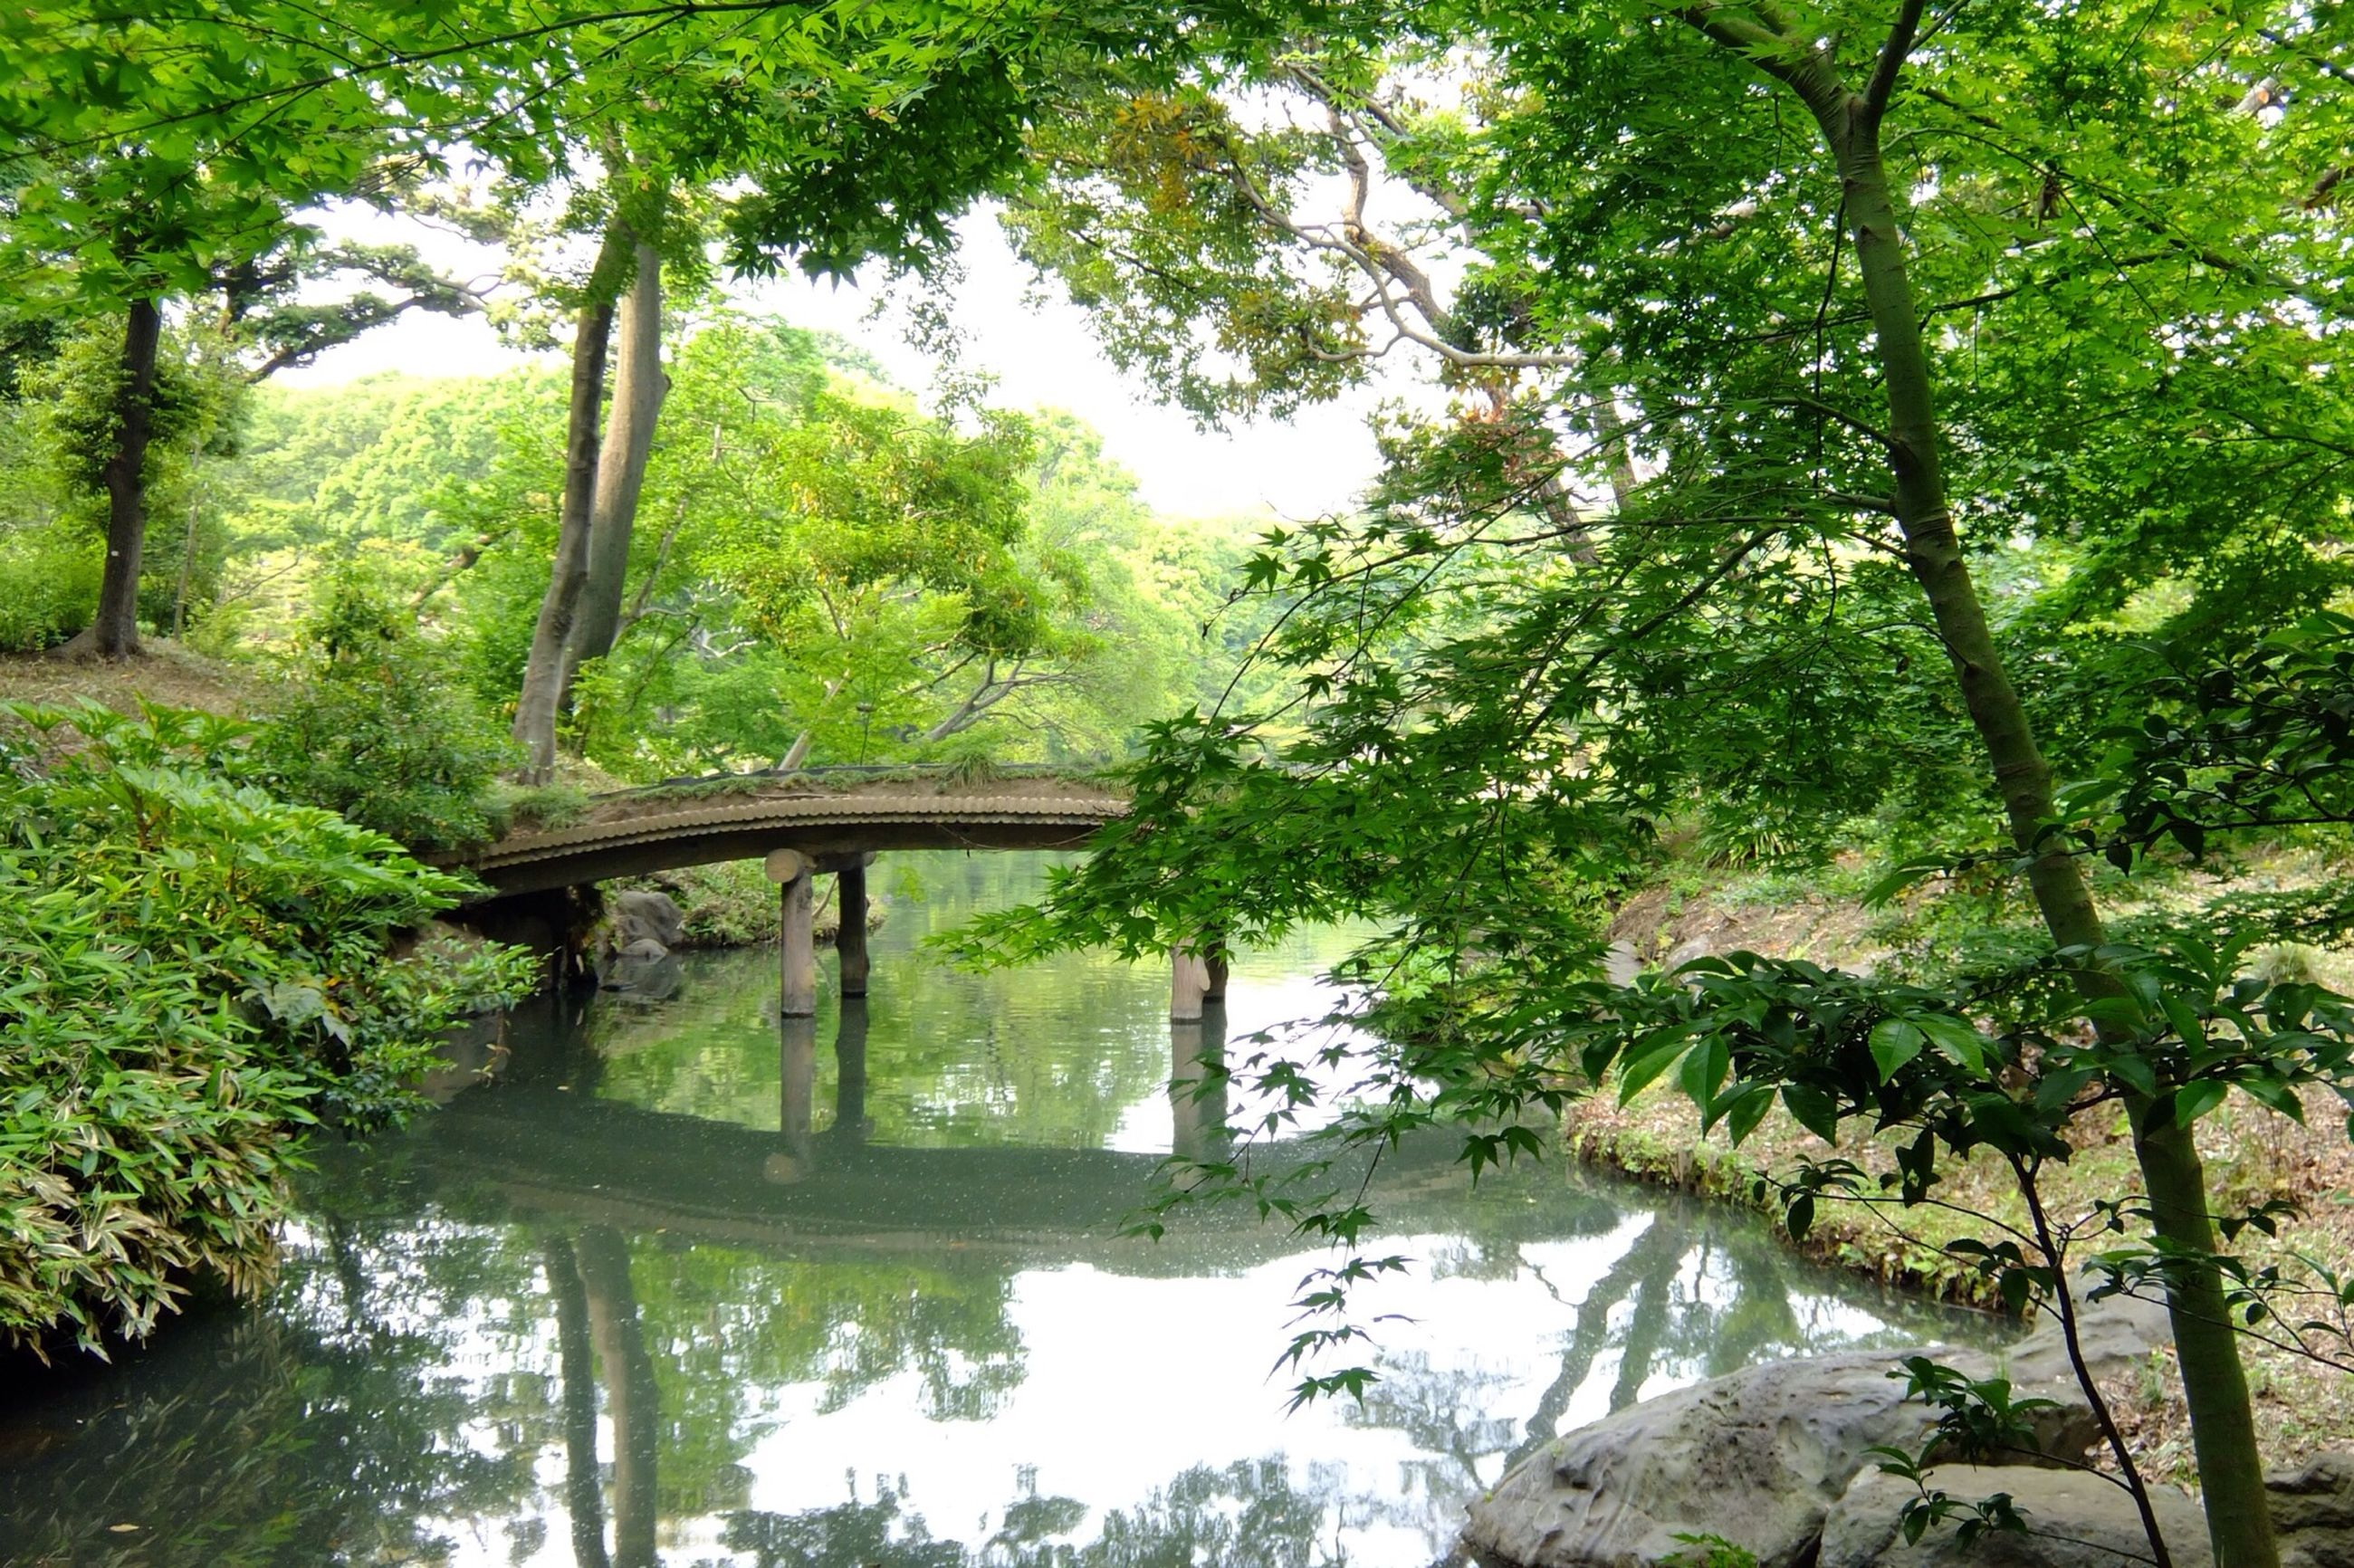 tree, water, tranquility, reflection, tranquil scene, beauty in nature, growth, green color, lake, nature, scenics, river, branch, forest, bridge - man made structure, lush foliage, idyllic, pond, stream, footbridge